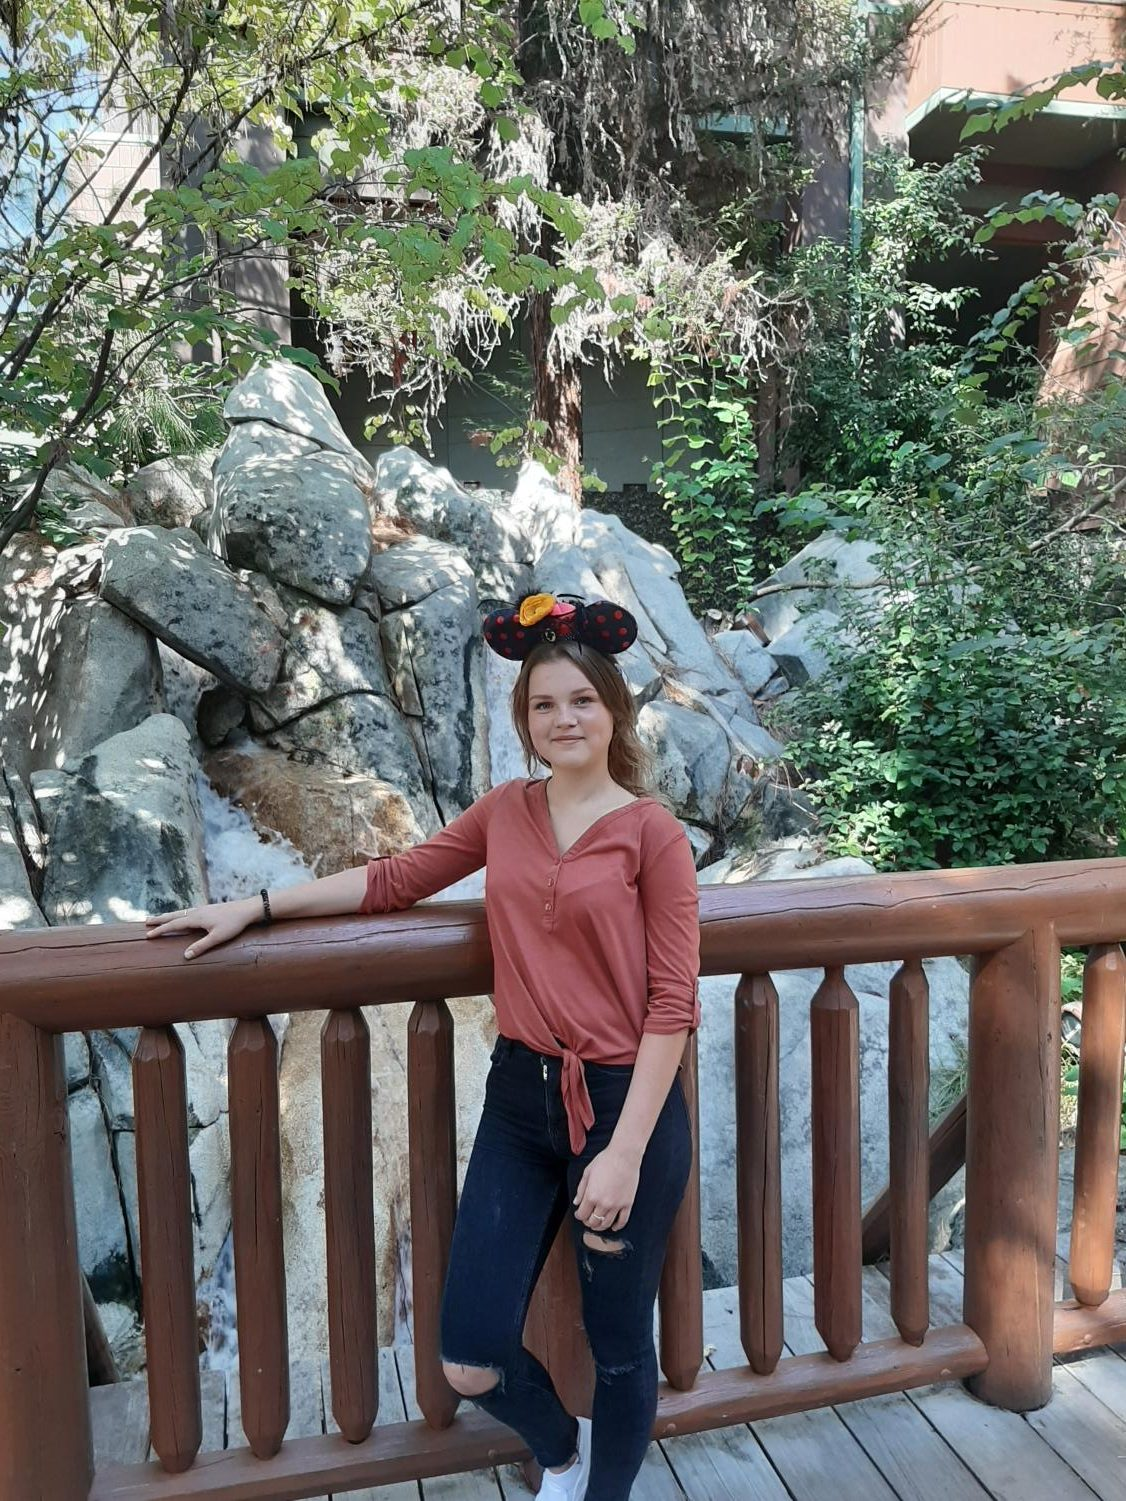 Daria poses for picture at  the happiest place in the world; Disneyland